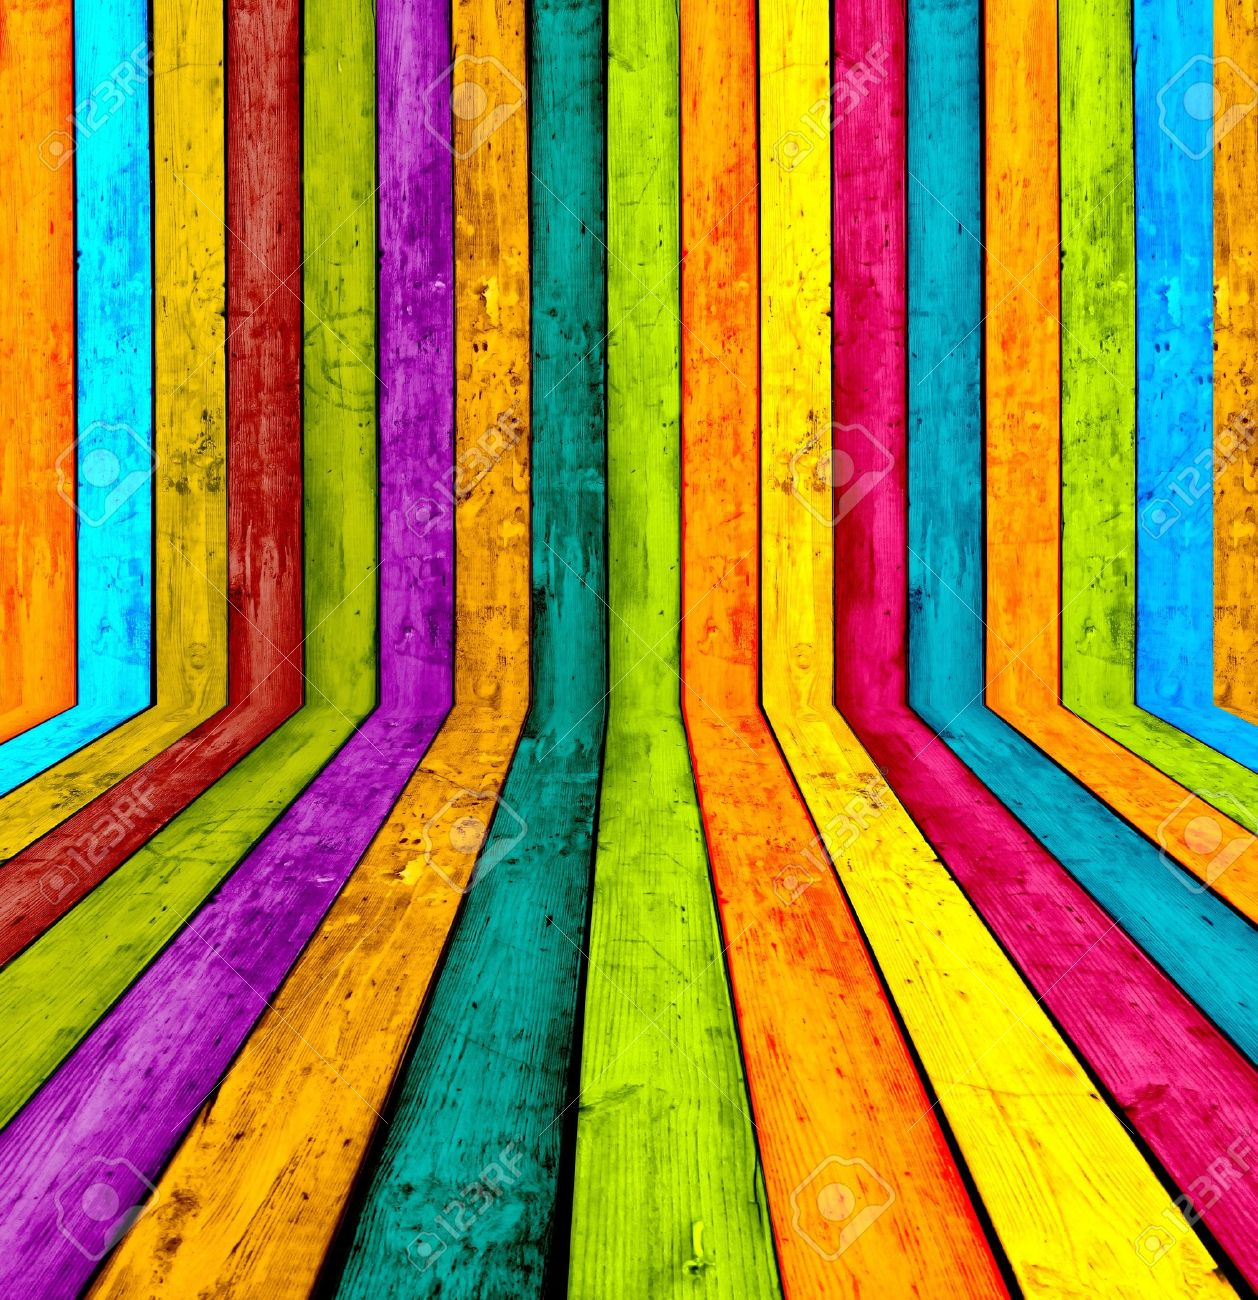 000127852704 Multicolored Wooden Room Stock Photo - 9572037